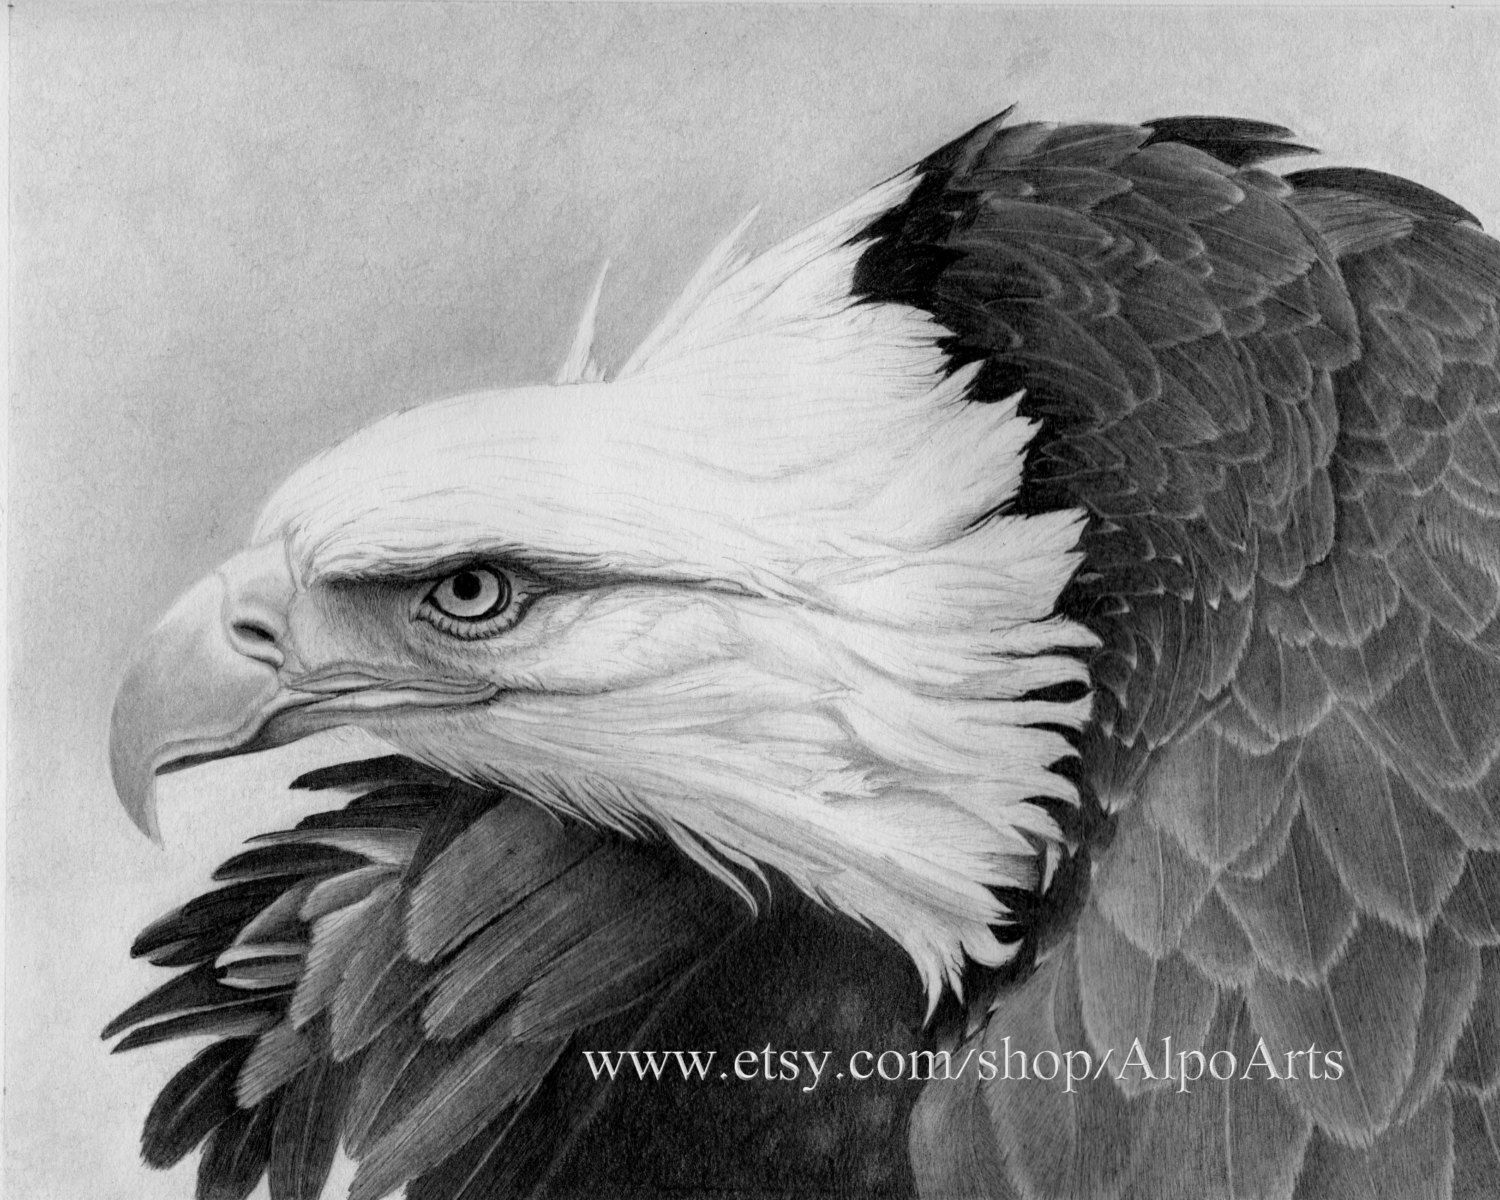 Bald eagle standing bald eagle hawks in flight hot air balloon in - Eagle Pencil Drawing Realistic Wildlife Drawing With Bald Eagle In Flight Patriotic Eagle Picture 8x10 Fine